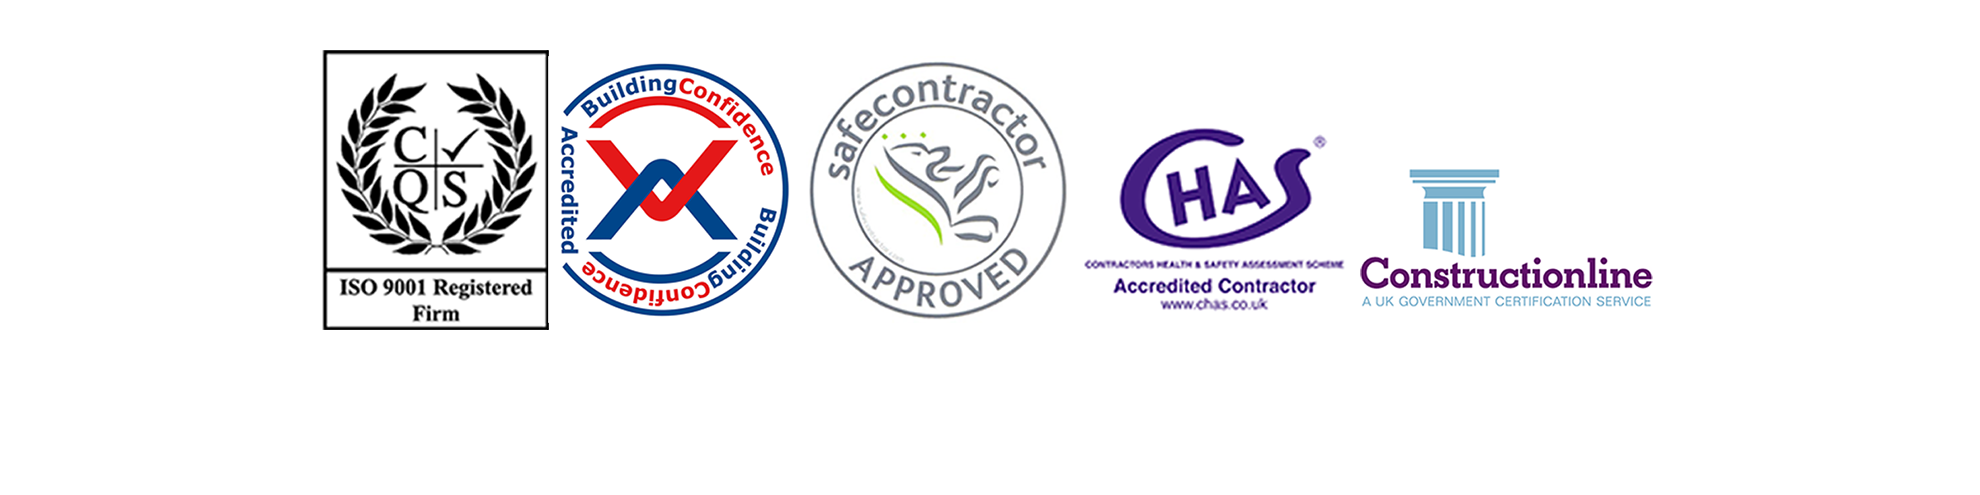 Laminate Solutions Accreditations